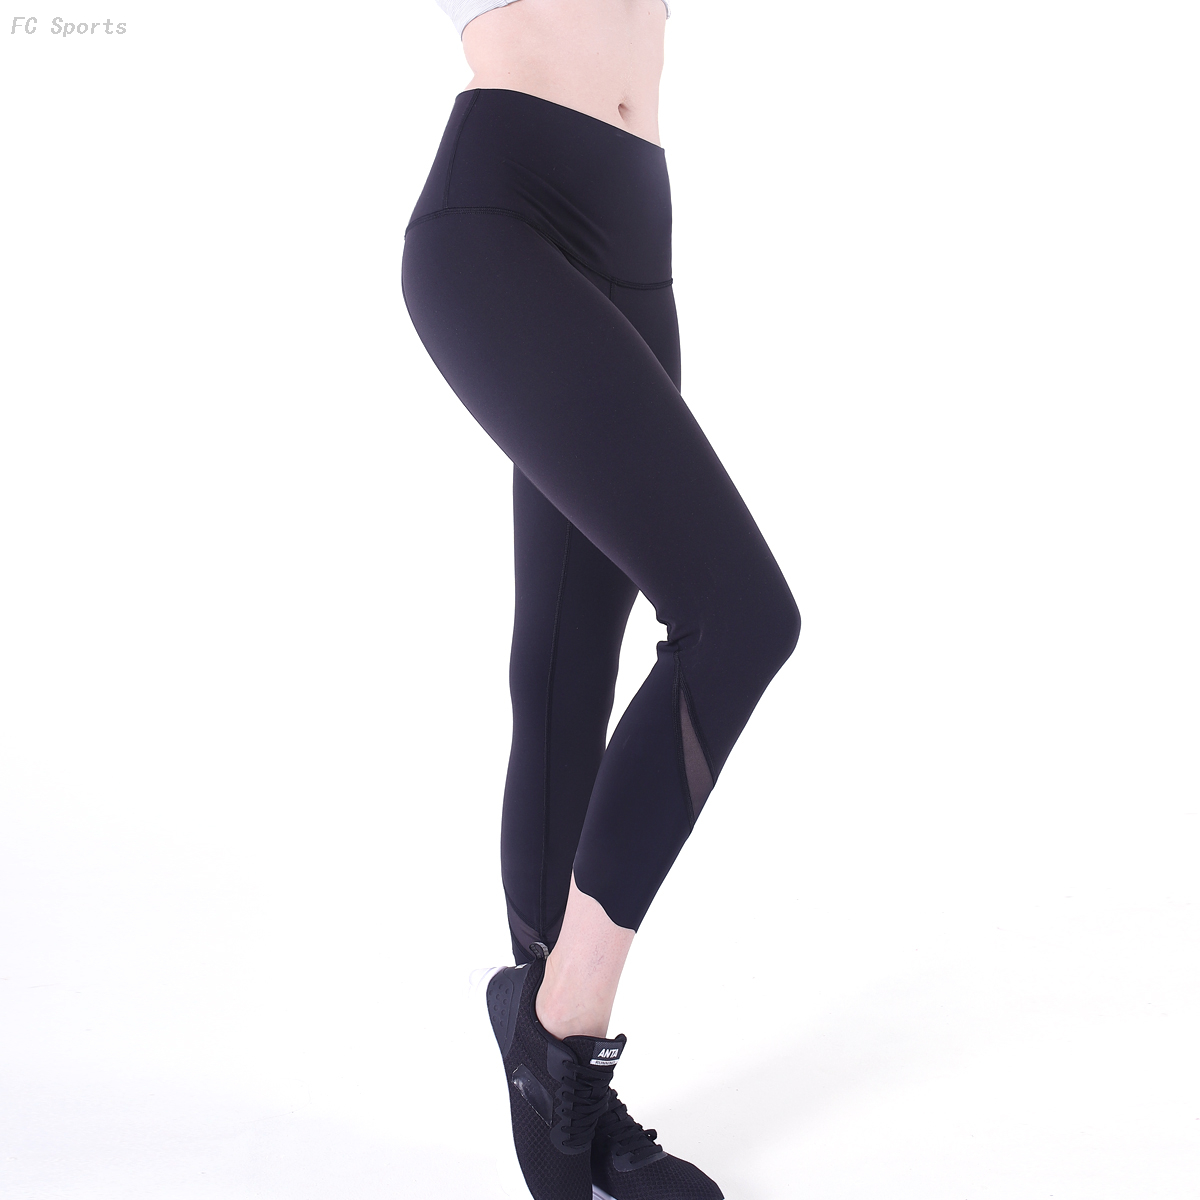 FC Sports Legging Yoga Pants Dry Fit Stretch Breathable Fitness Clothes Active Wear for Women